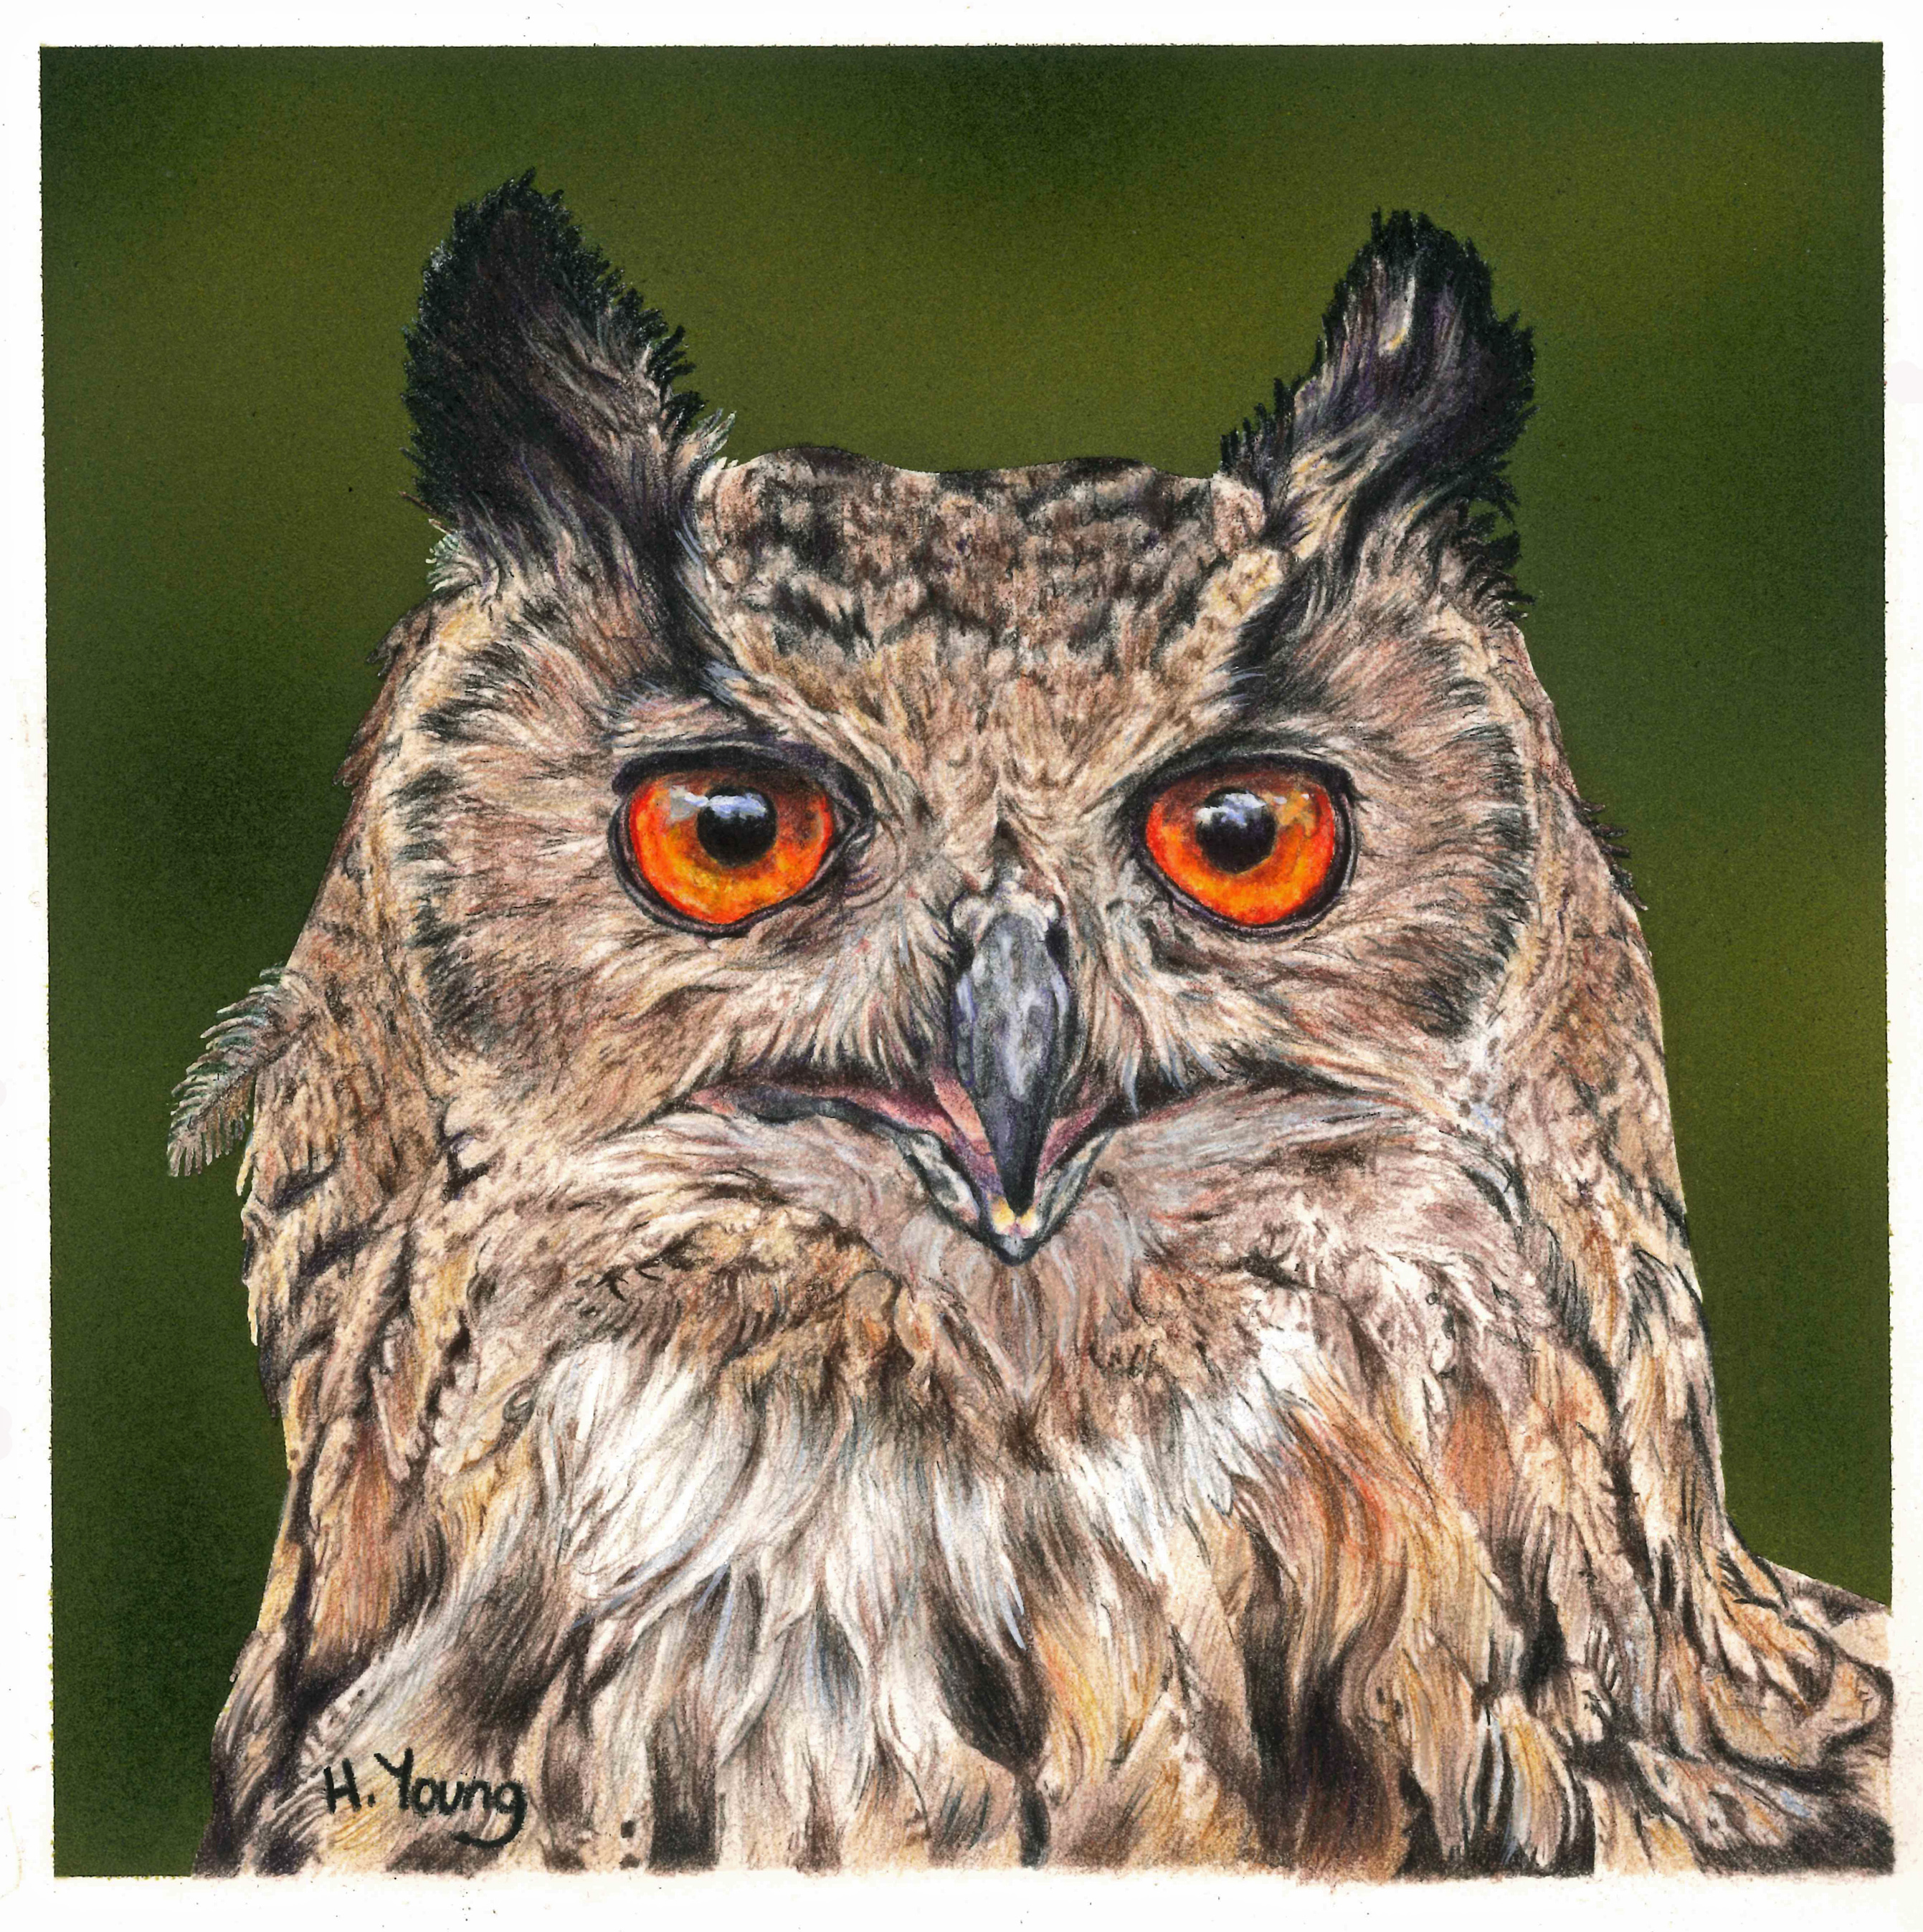 Giant Eagle Owl - Acrylic & Colour Pencils